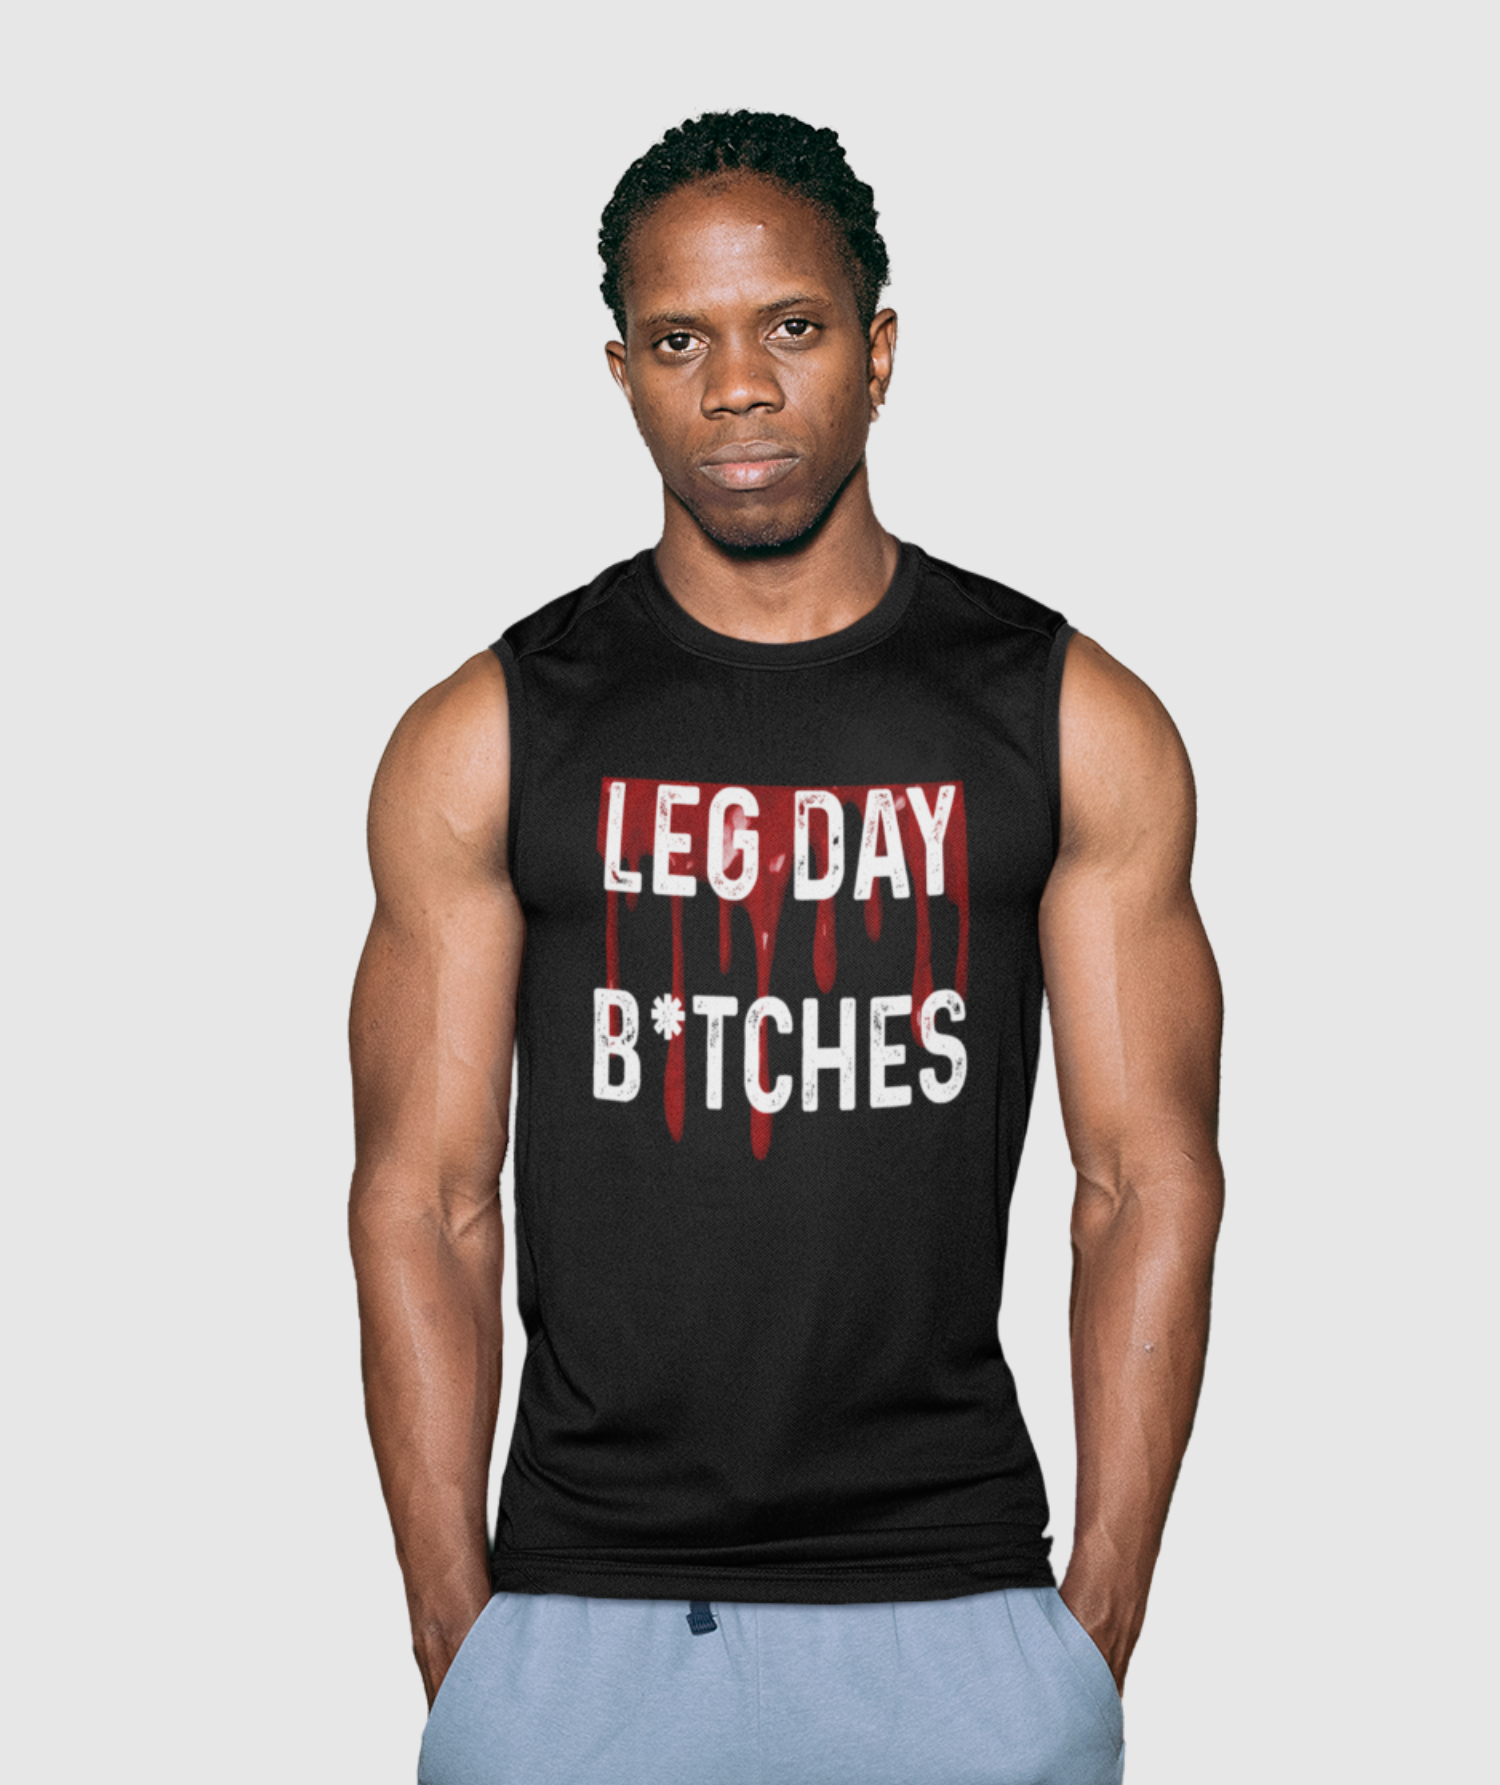 Leg Day B*tches Sleeveless